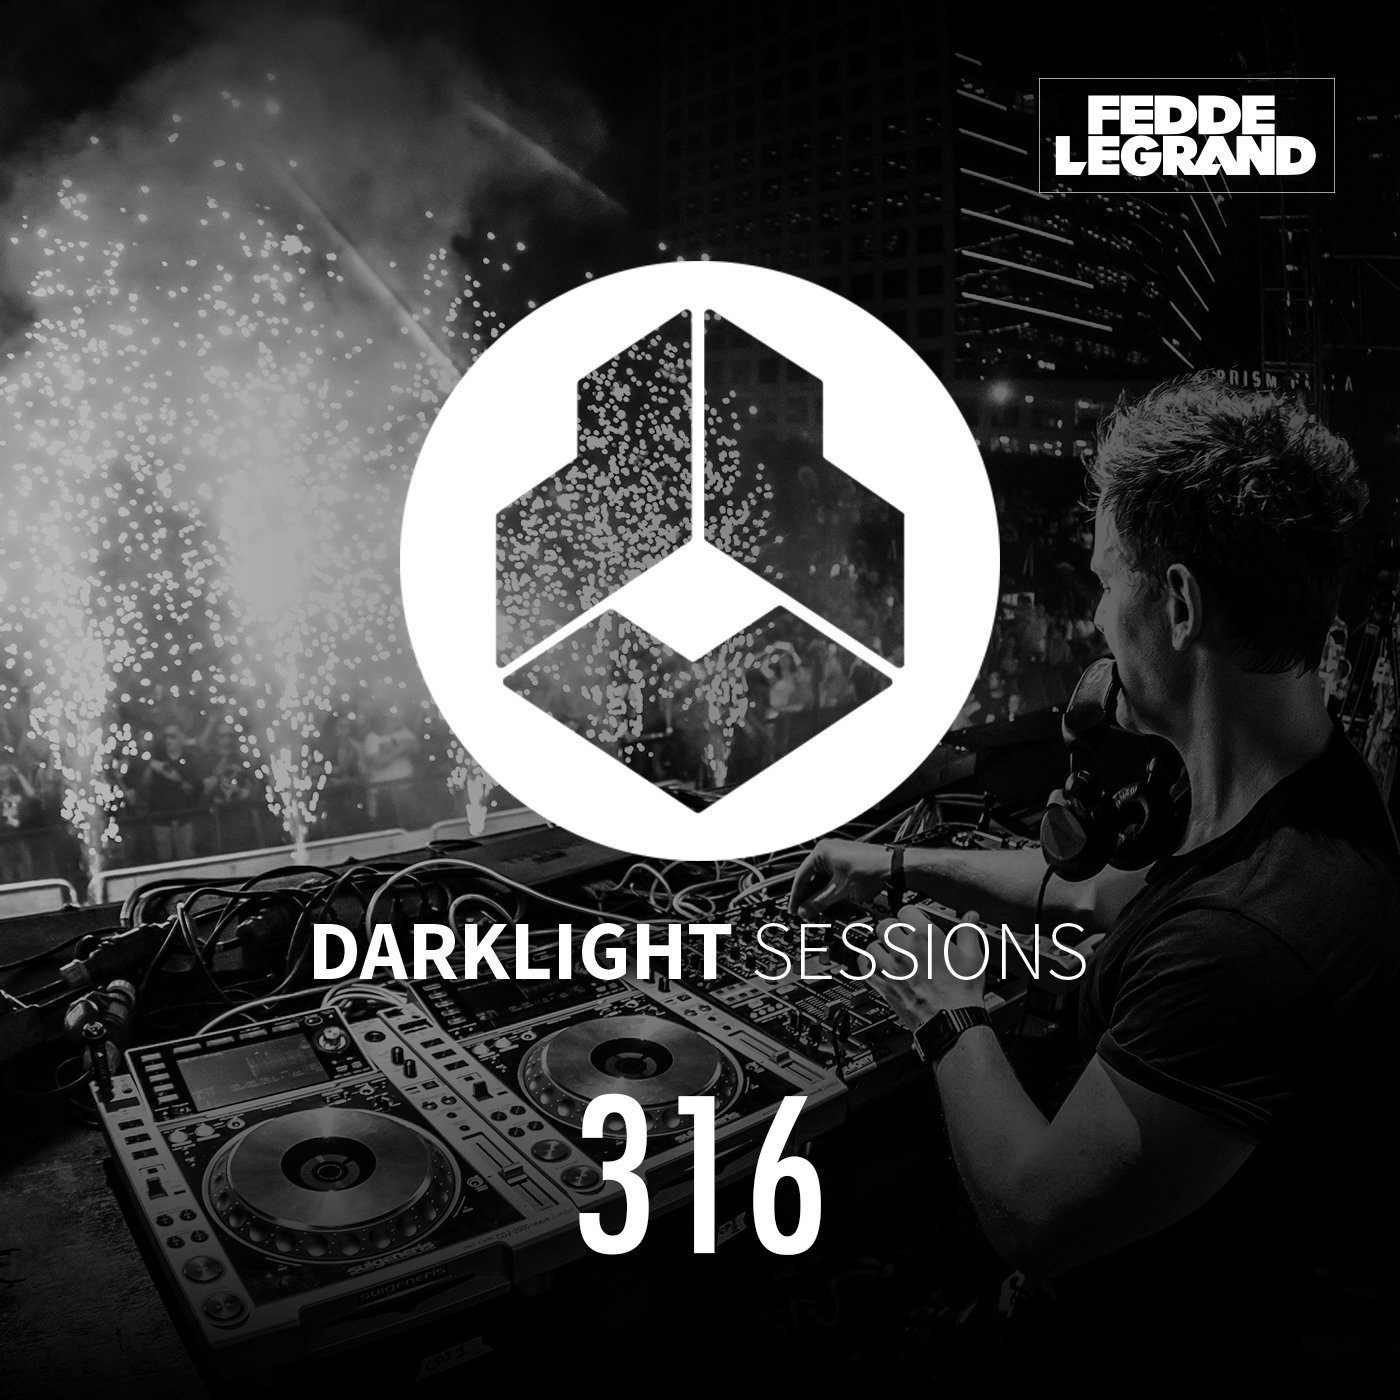 Darklight Sessions 316